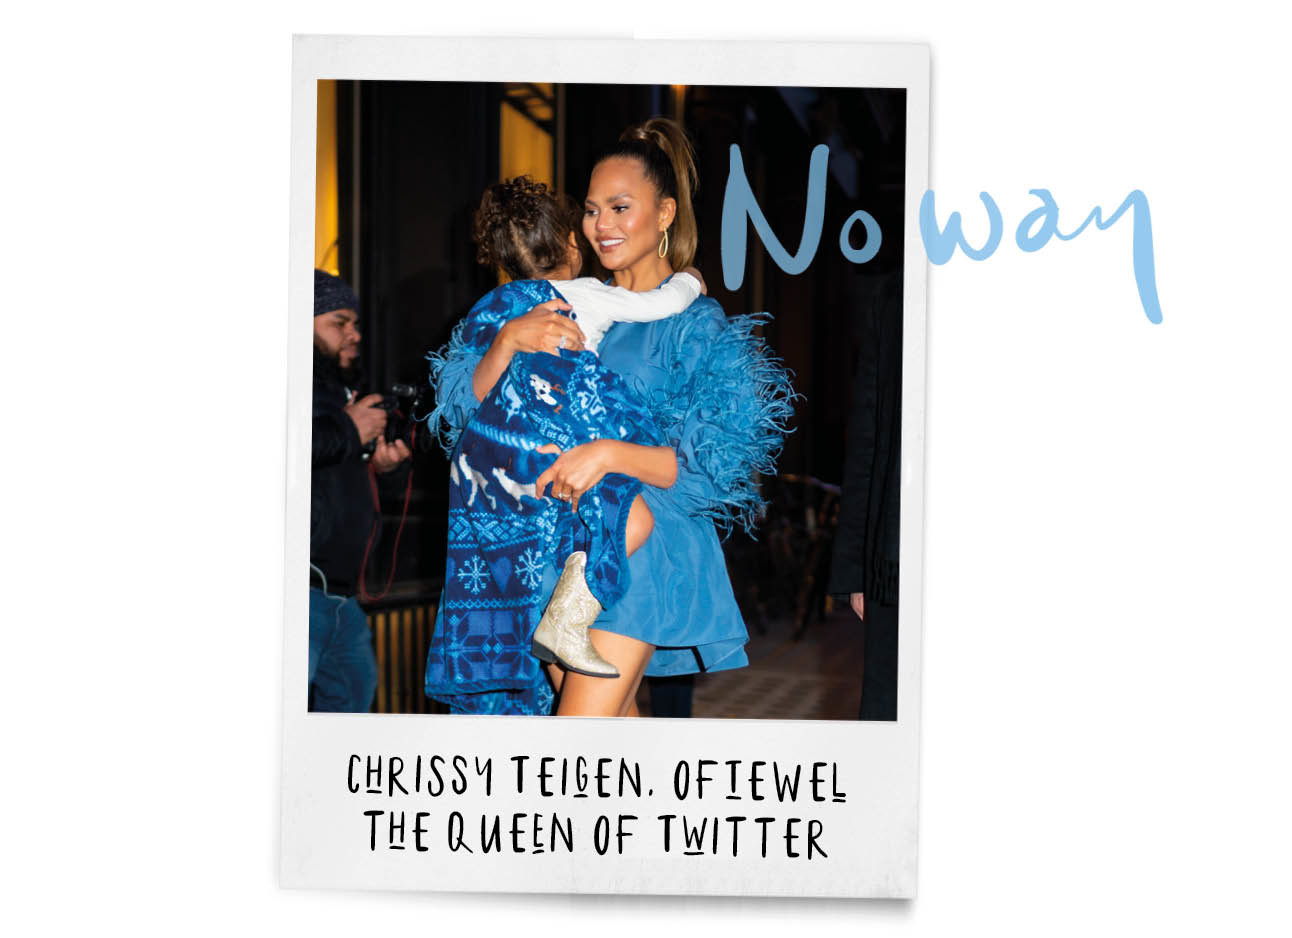 chrissy teigen social media